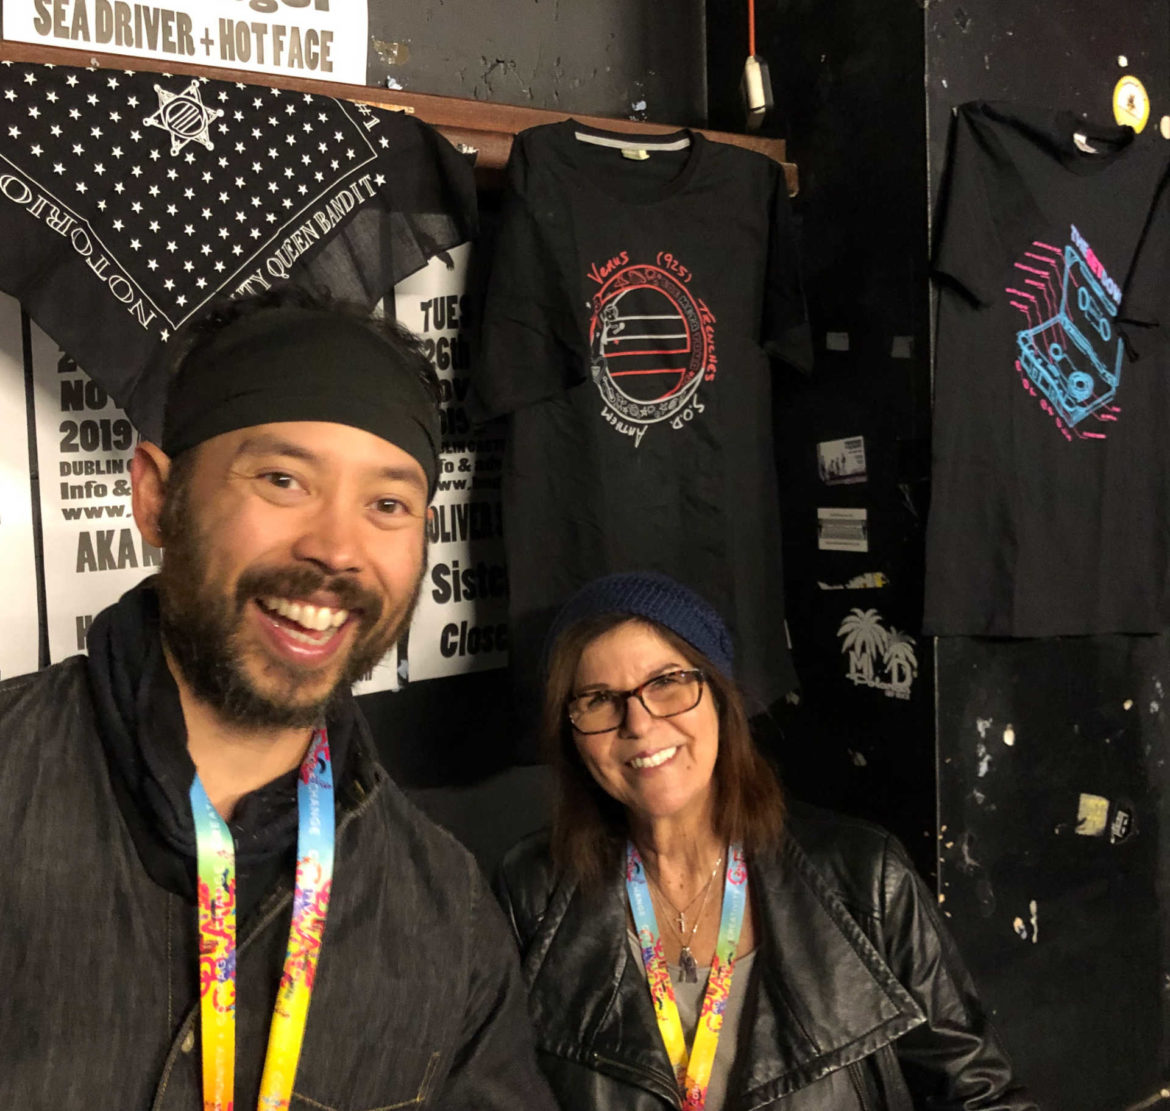 Angelo & Deb at the merch table